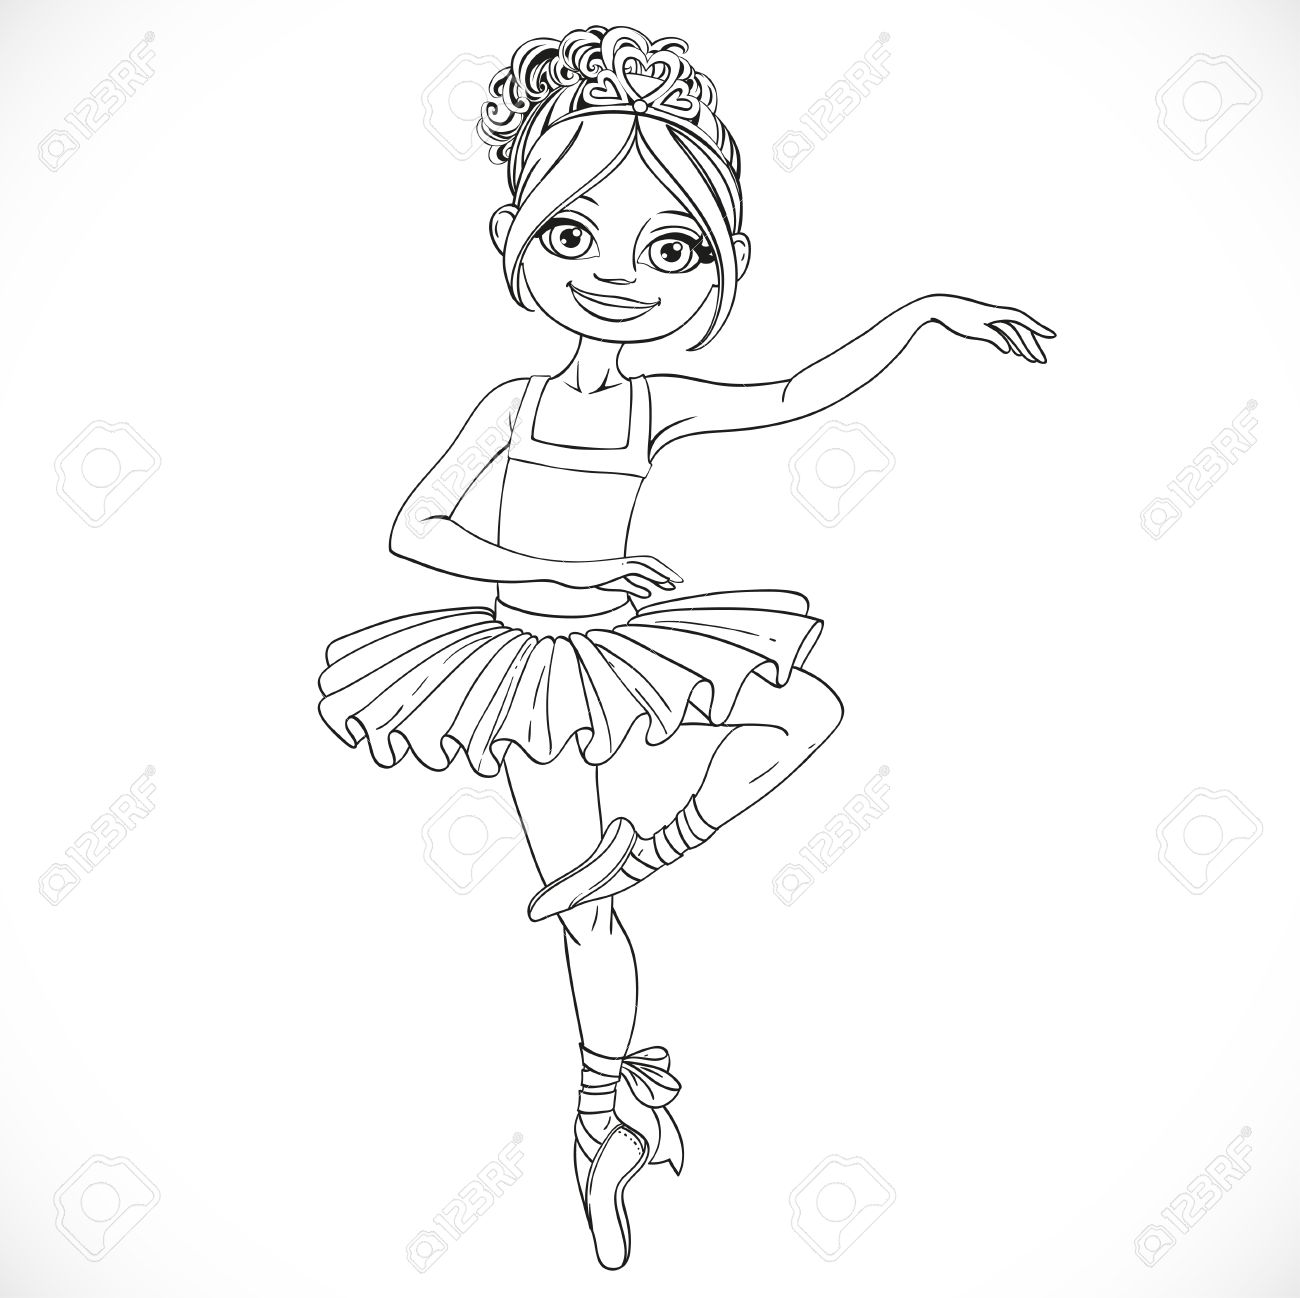 1300x1298 Cute Ballerina Girl Dancing Outlined Isolated On A White